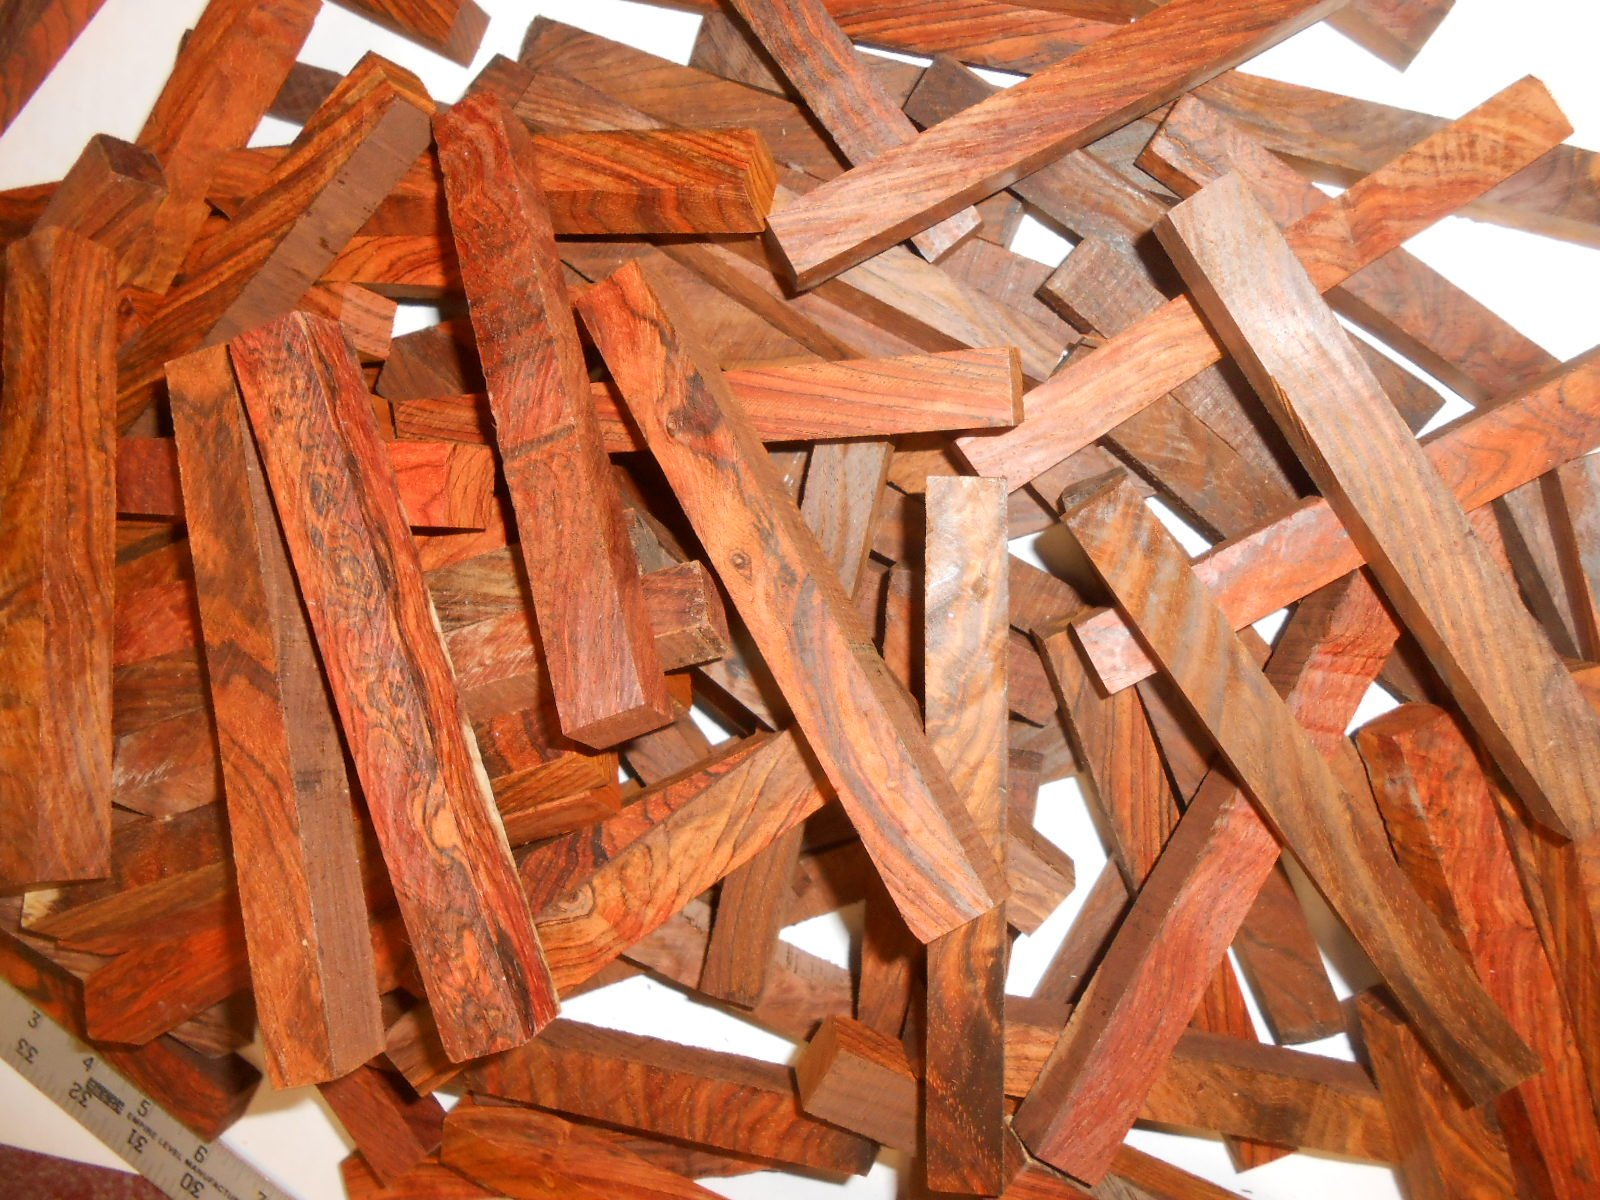 Cocobolo Rosewood Pen Blanks all heartwood-100 pieces @ 3/4'' x 3/4'' x 5 inches by Diamond Tropical Hardwoods